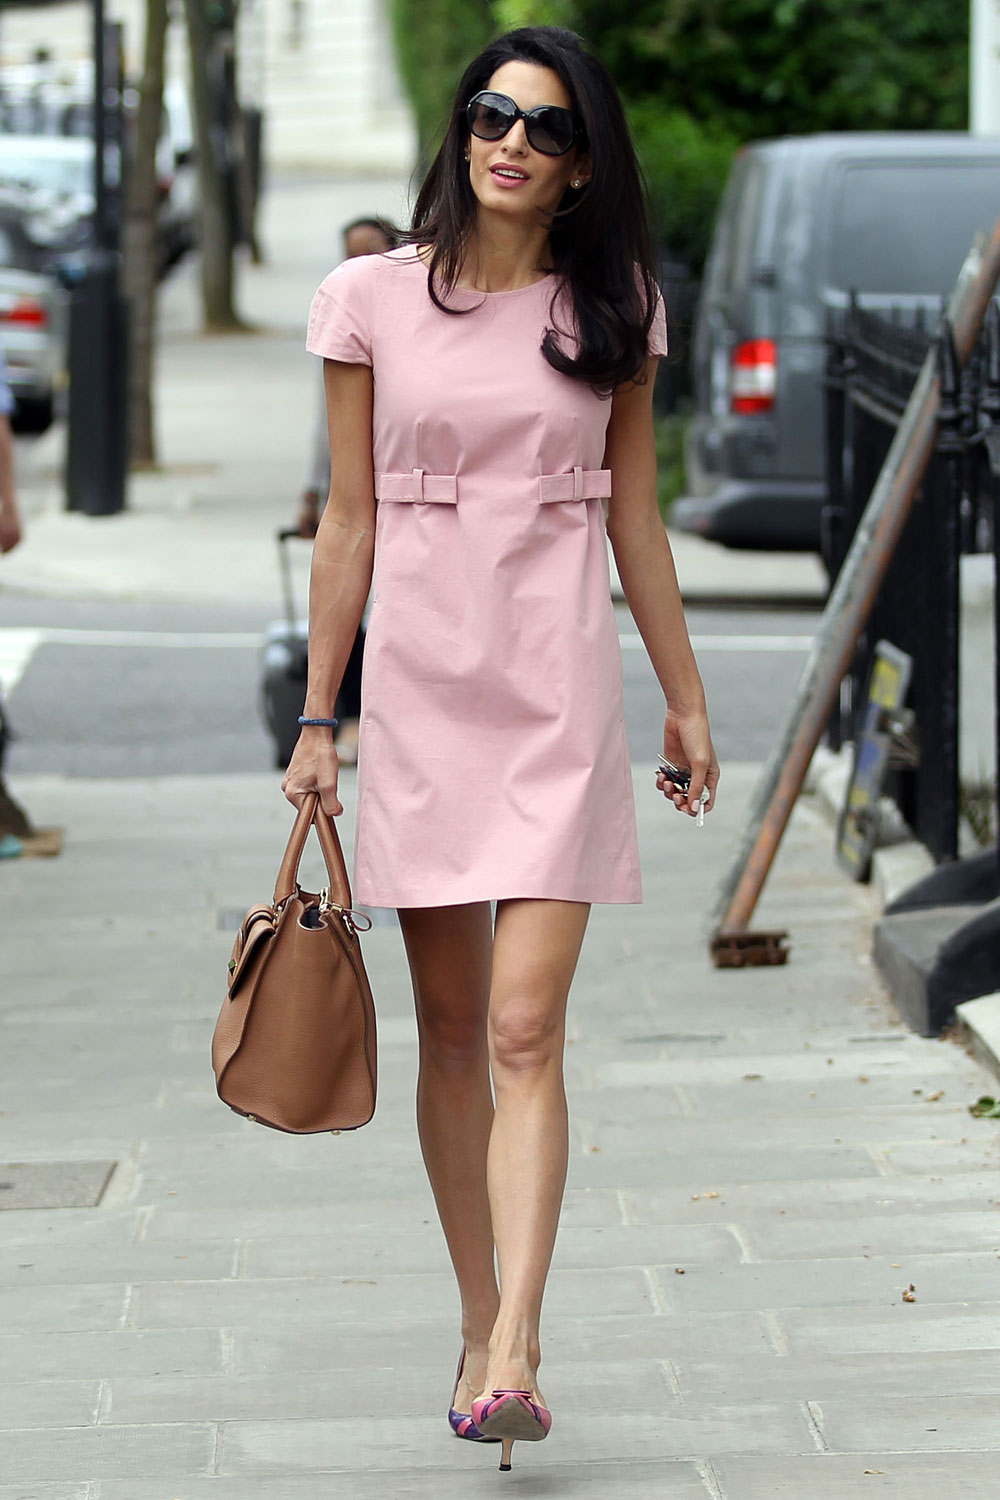 The Style Icon Amal Clooney Fashionandstylepolice Fashionandstylepolice